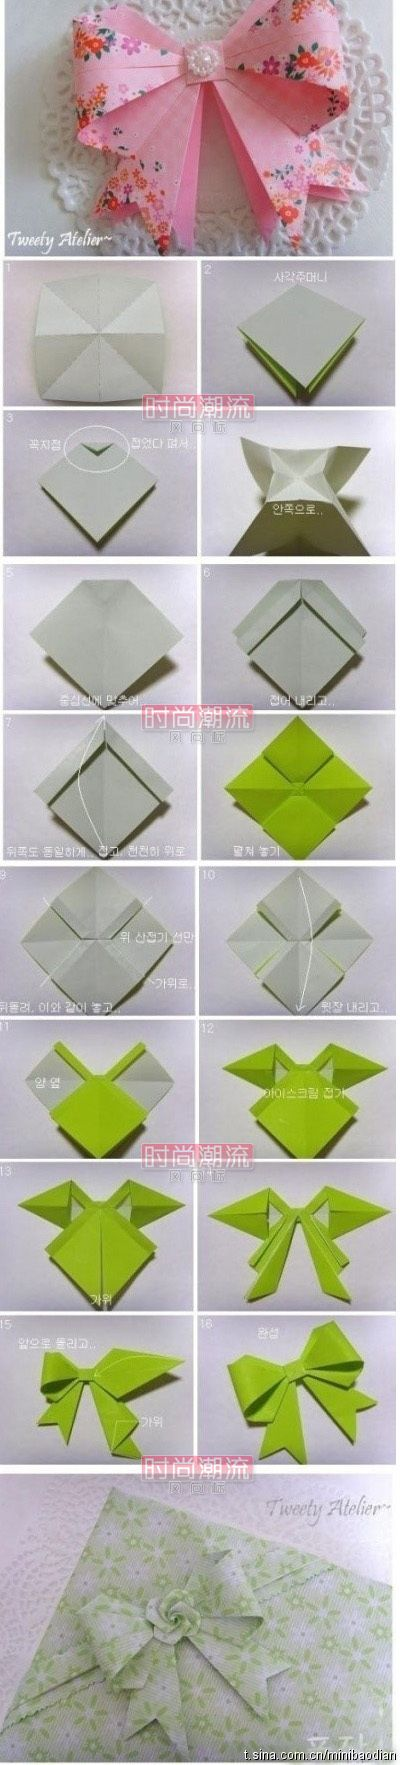 How to make an origami bow